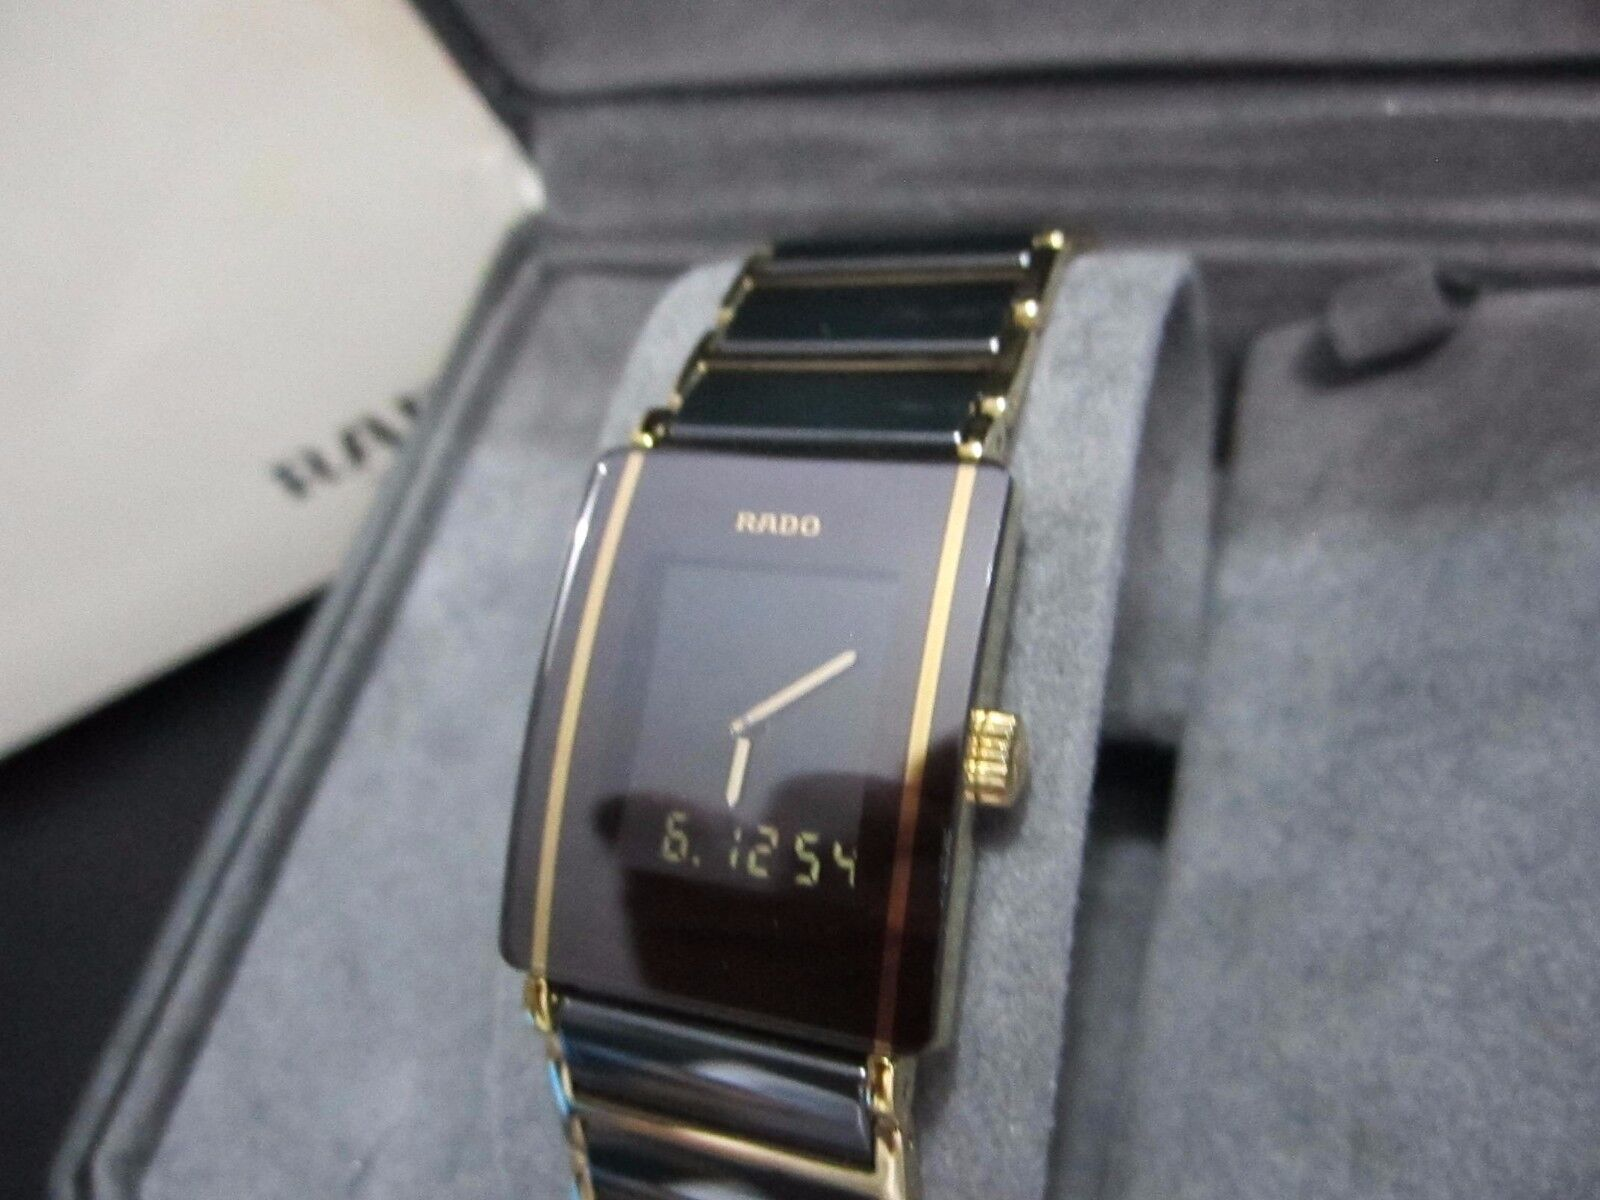 Rado DiaStar Woman High Tech Ceramic Scratchproof Analog & Digital 18K PVD